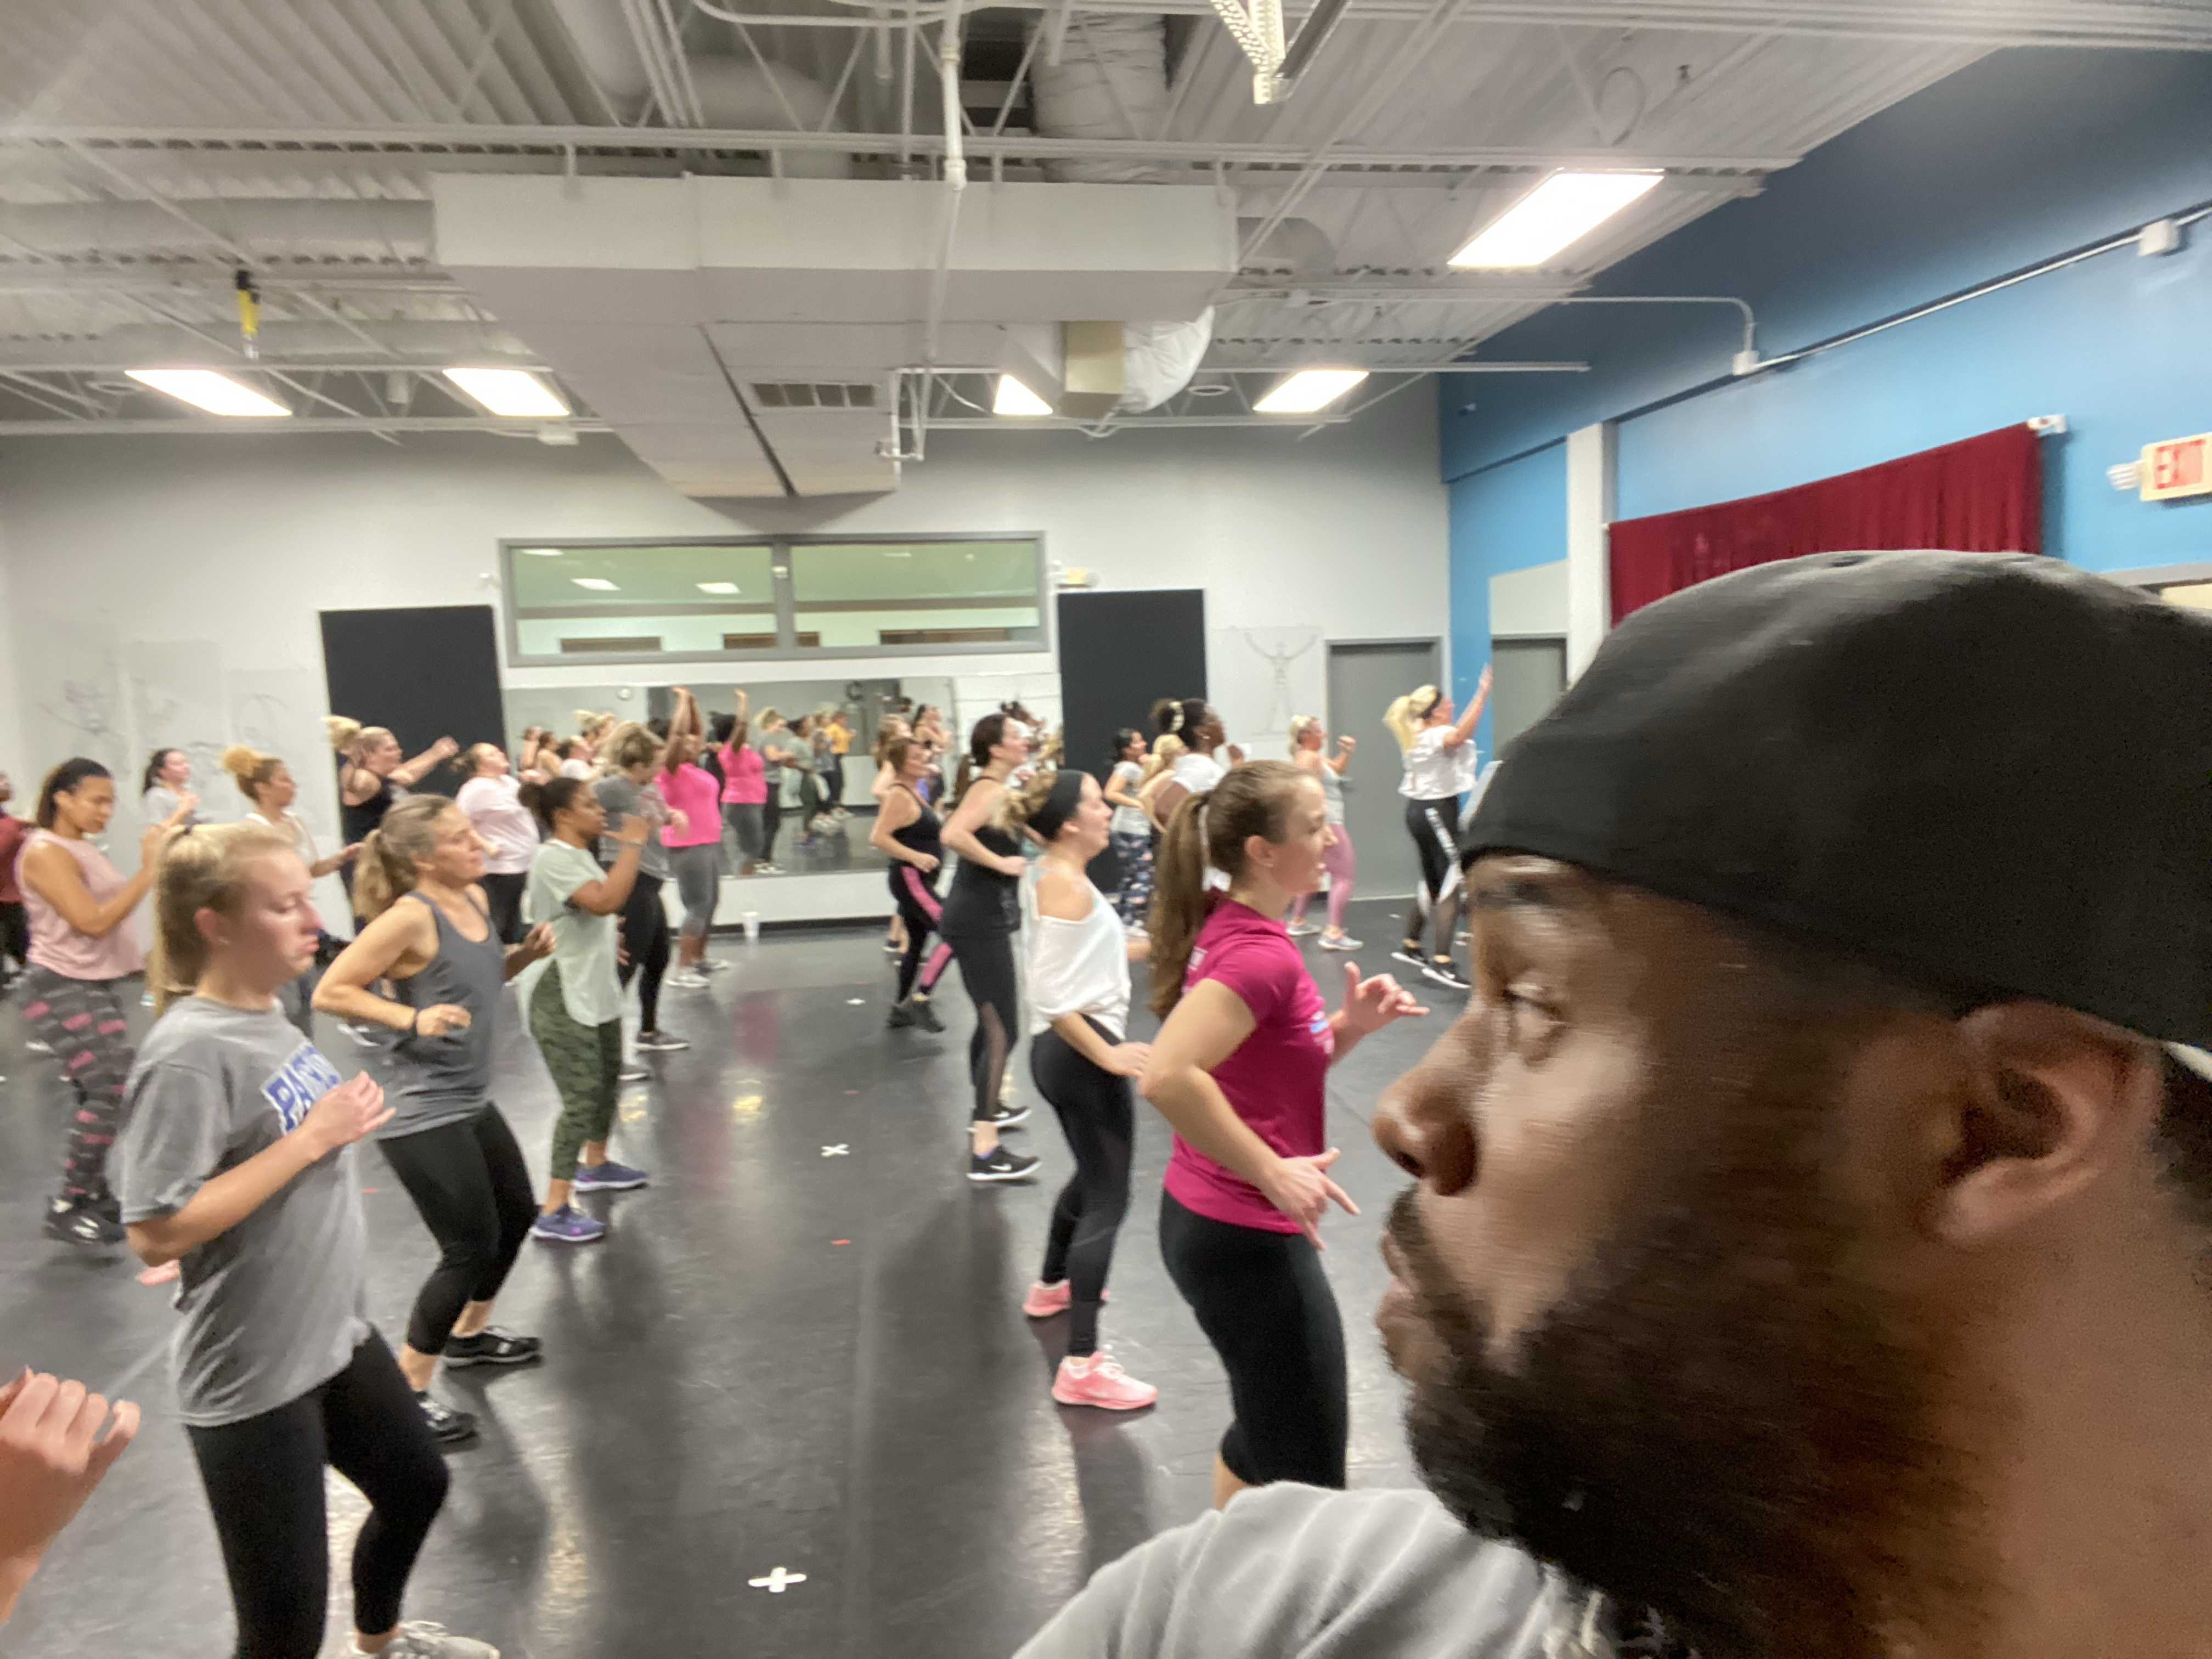 M. Nicholson hip hop fitness instructor Mike Nicholson wearing a black baseball cap turned backward overlooking the class full of people doing dance fitness in Columbus Ohio